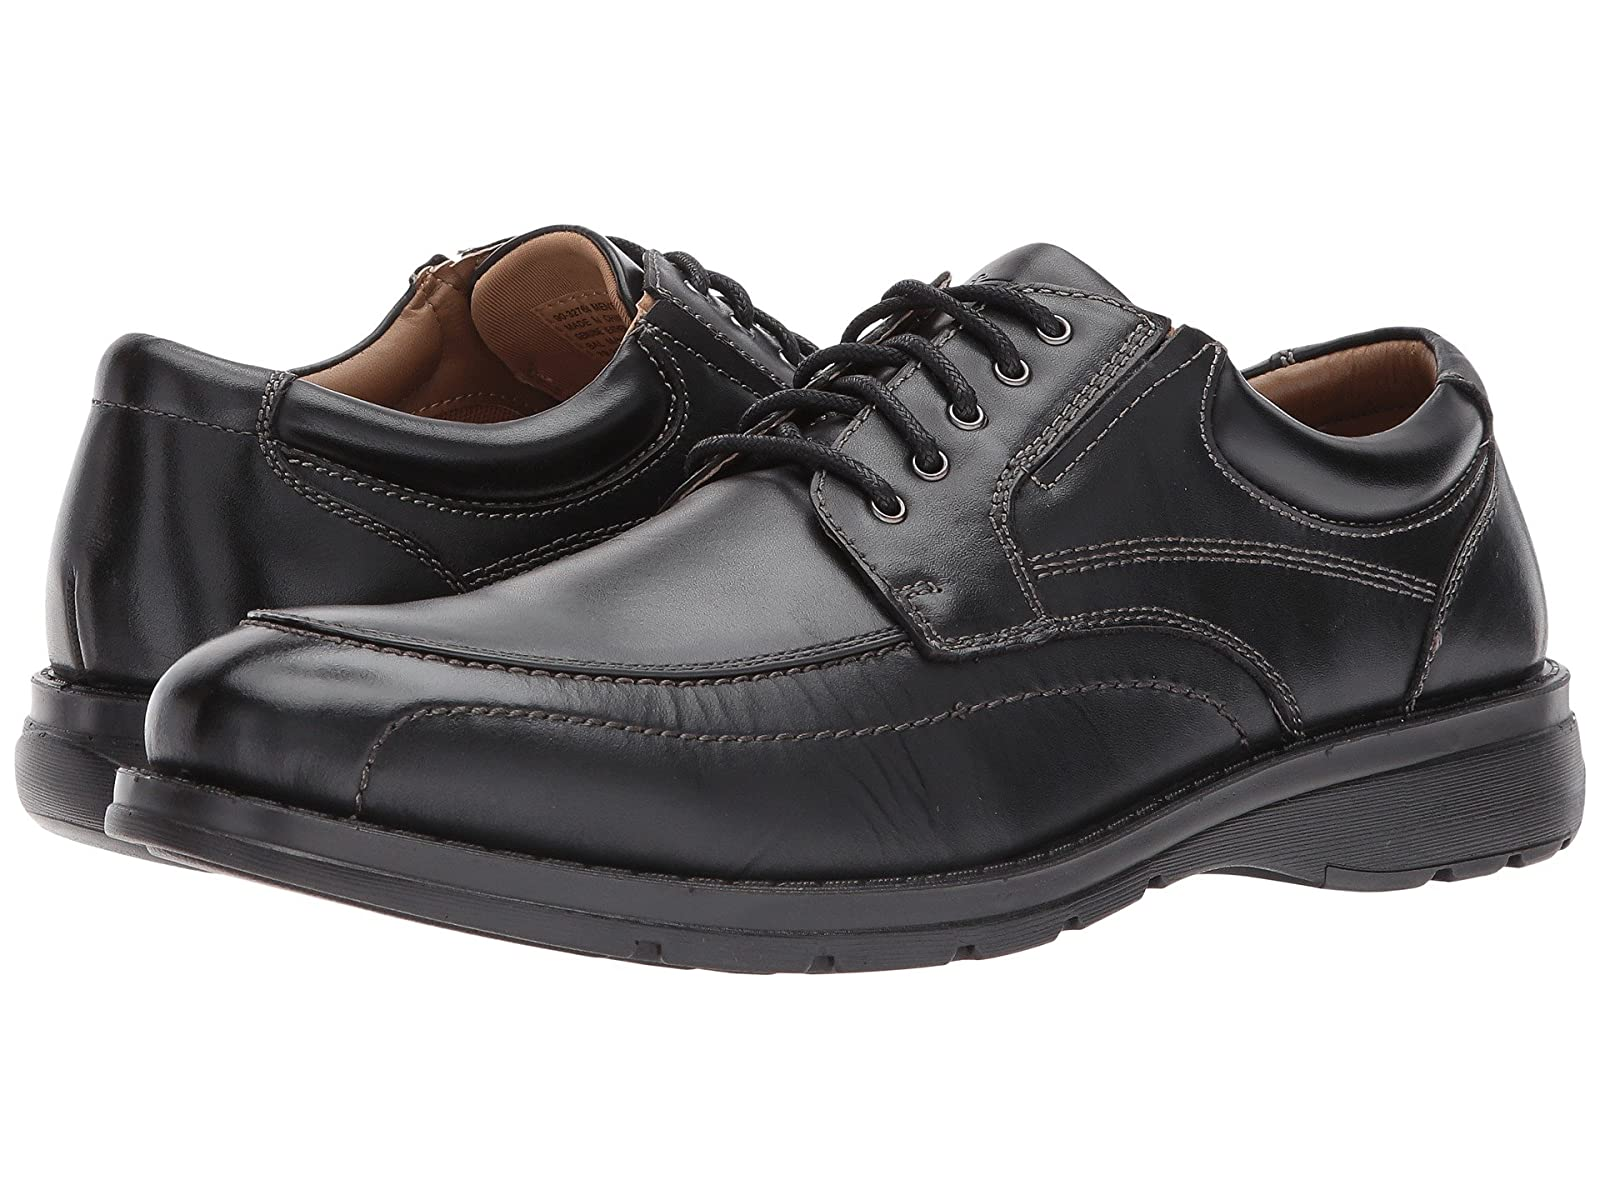 Dockers Barker Moc Toe OxfordAtmospheric grades have affordable shoes